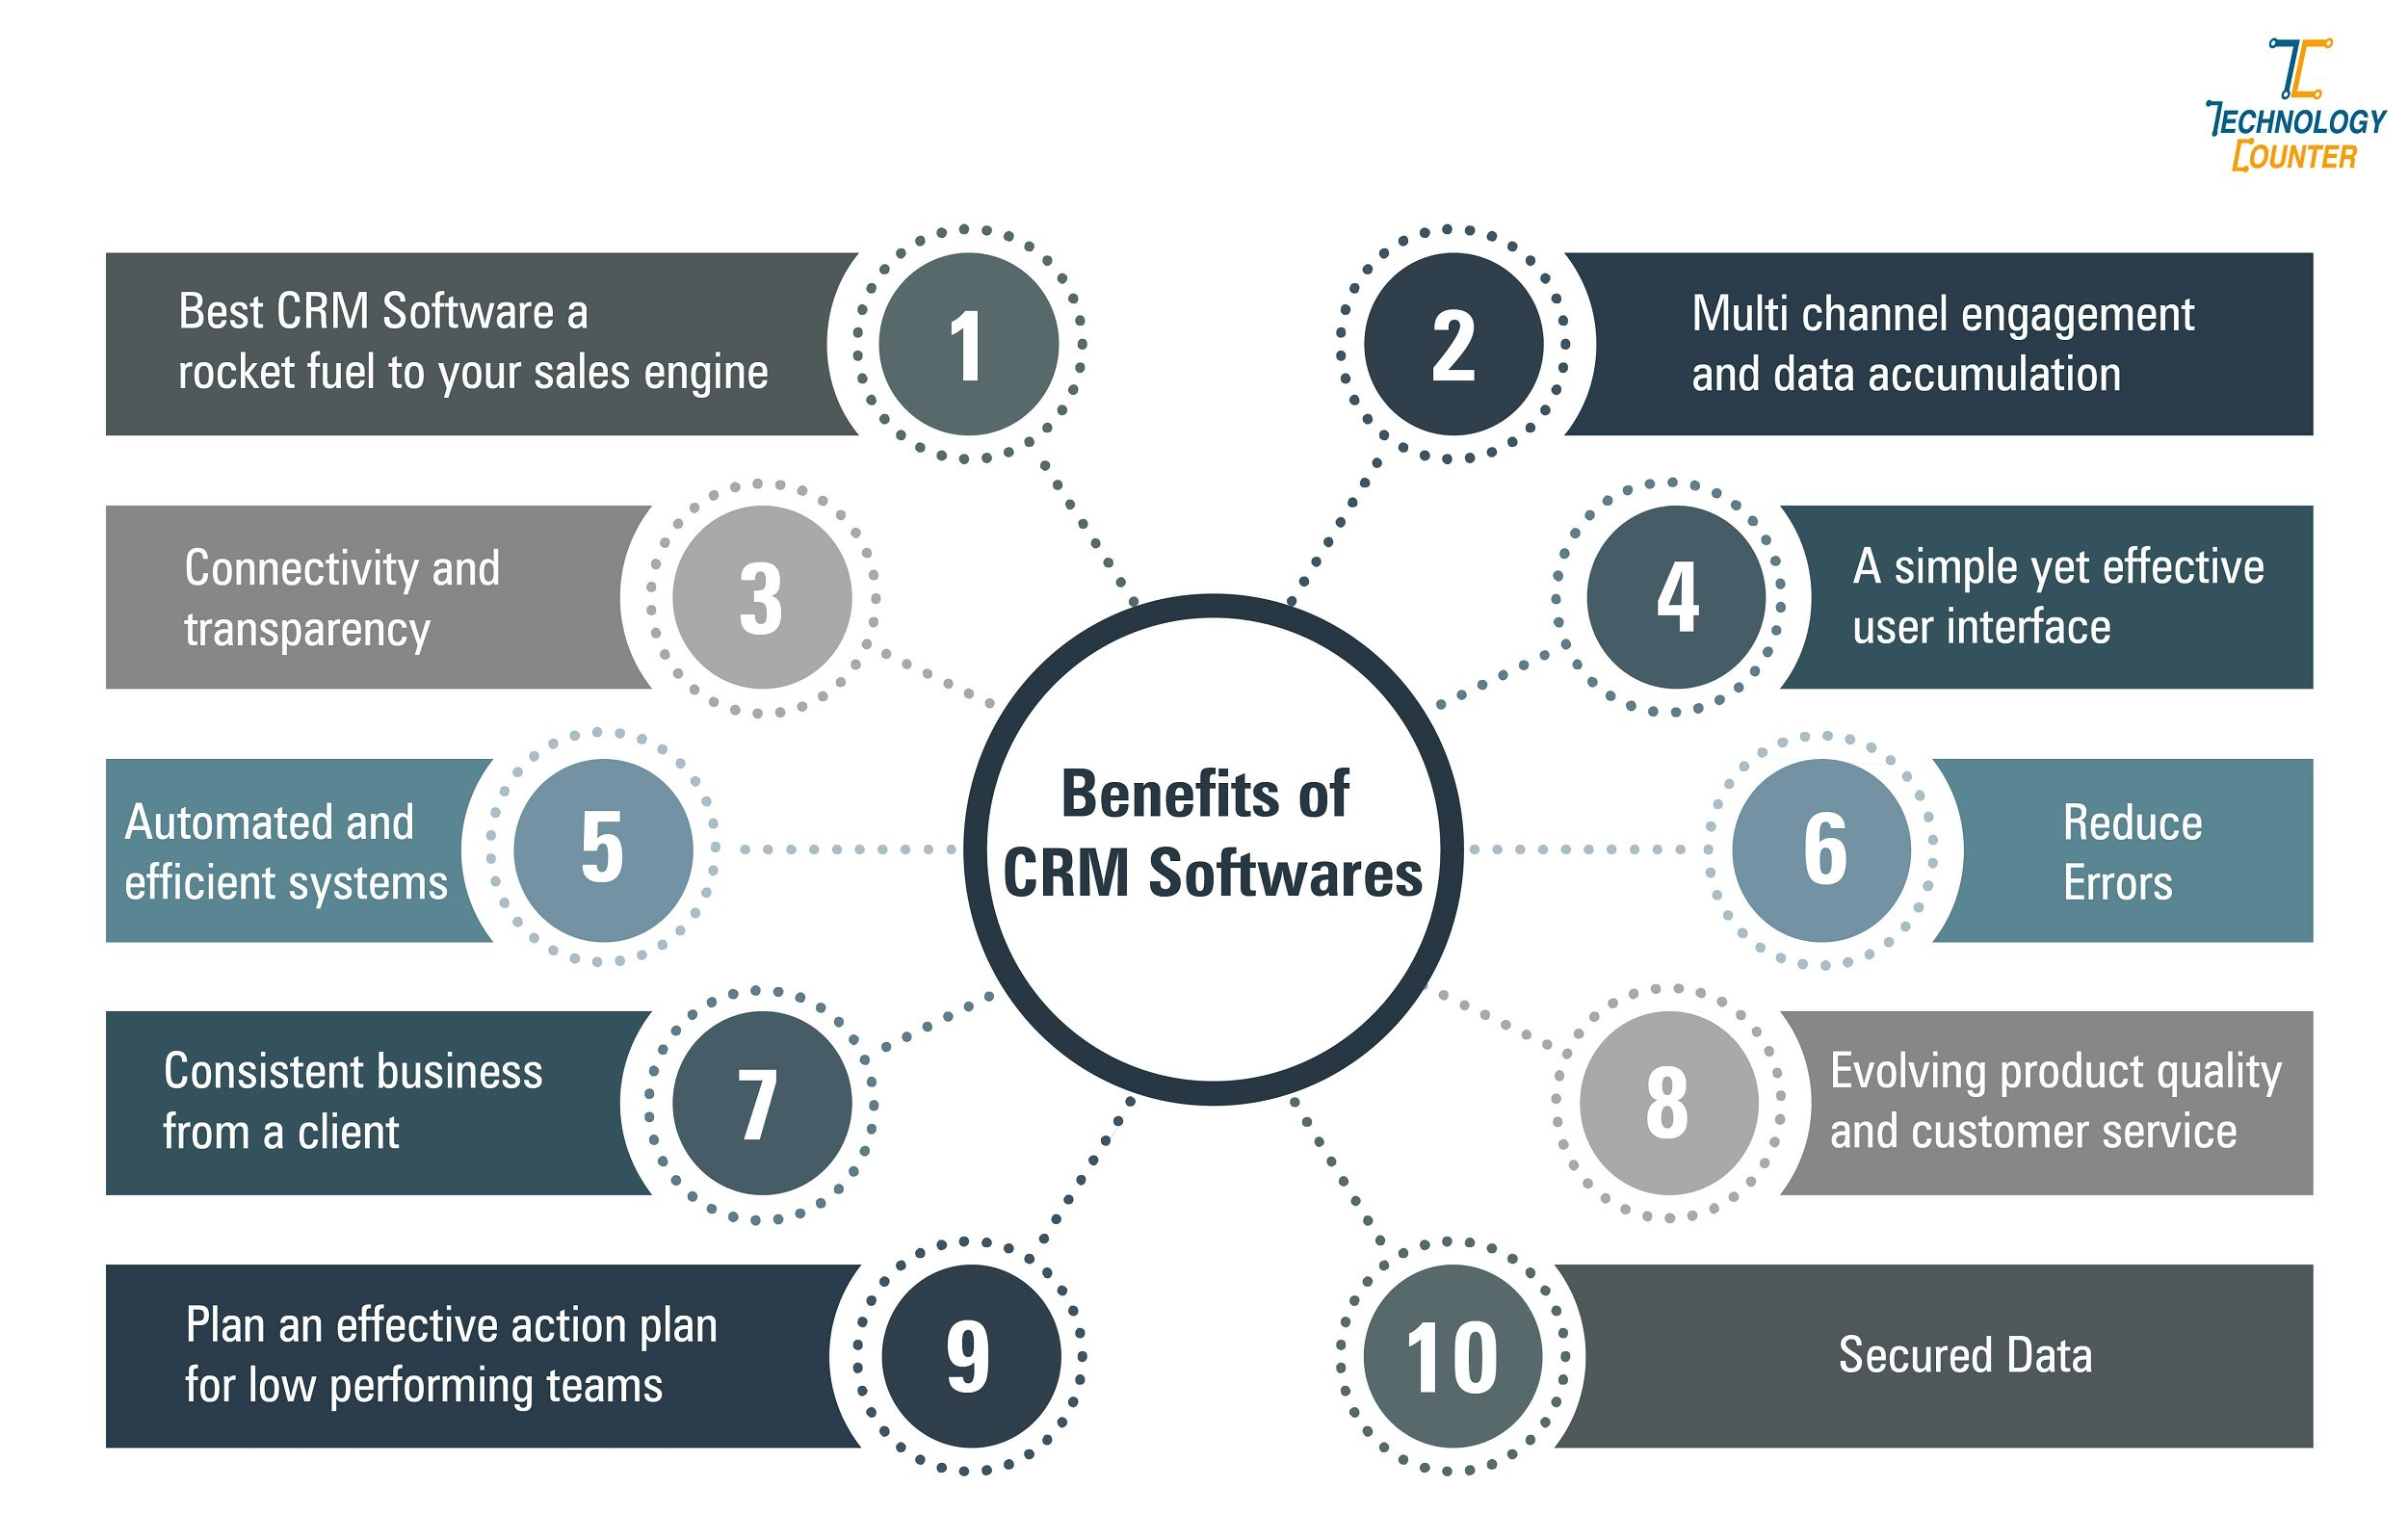 BENEFITS OF CRM SOFTWARE IN INIDA